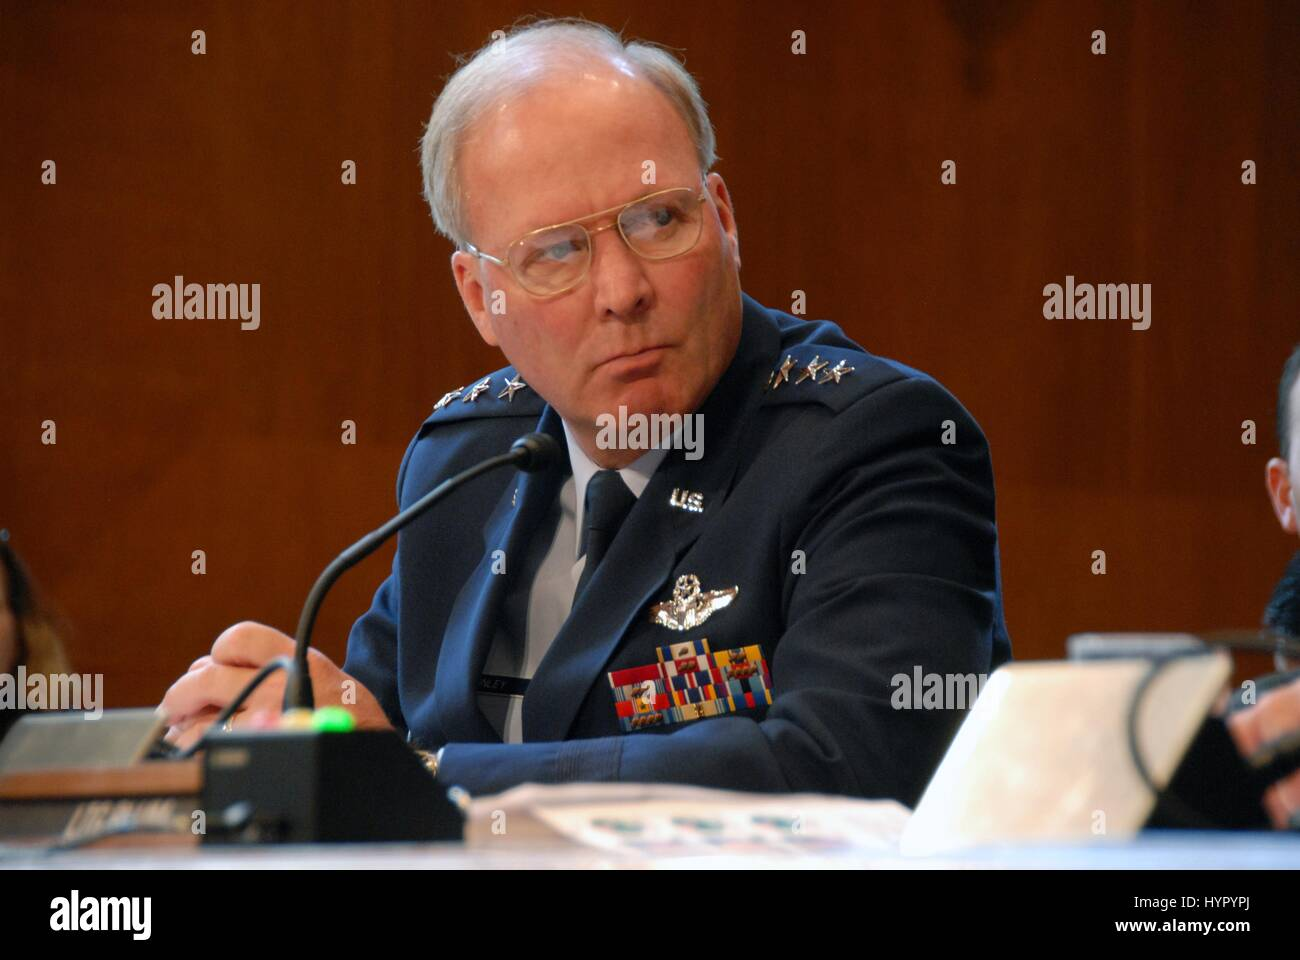 U.S. Air National Guard Director Craig McKinley testifies before the Senate Appropriations Subcommittee on Defense - Stock Image